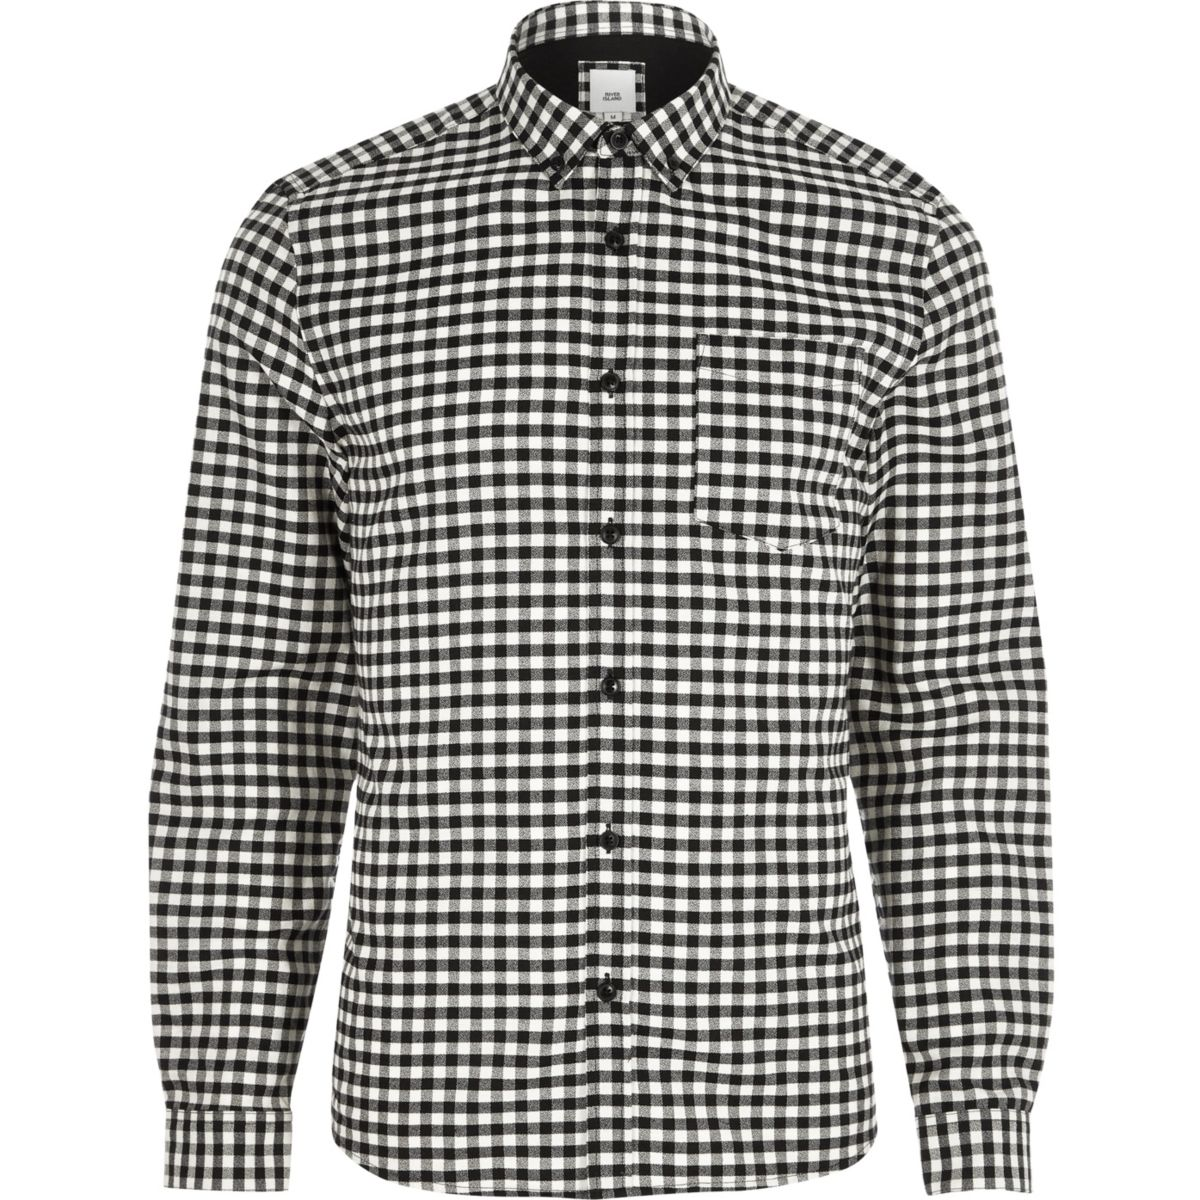 Zwart slim-fit overhemd met gingham-ruit en button-down kraag